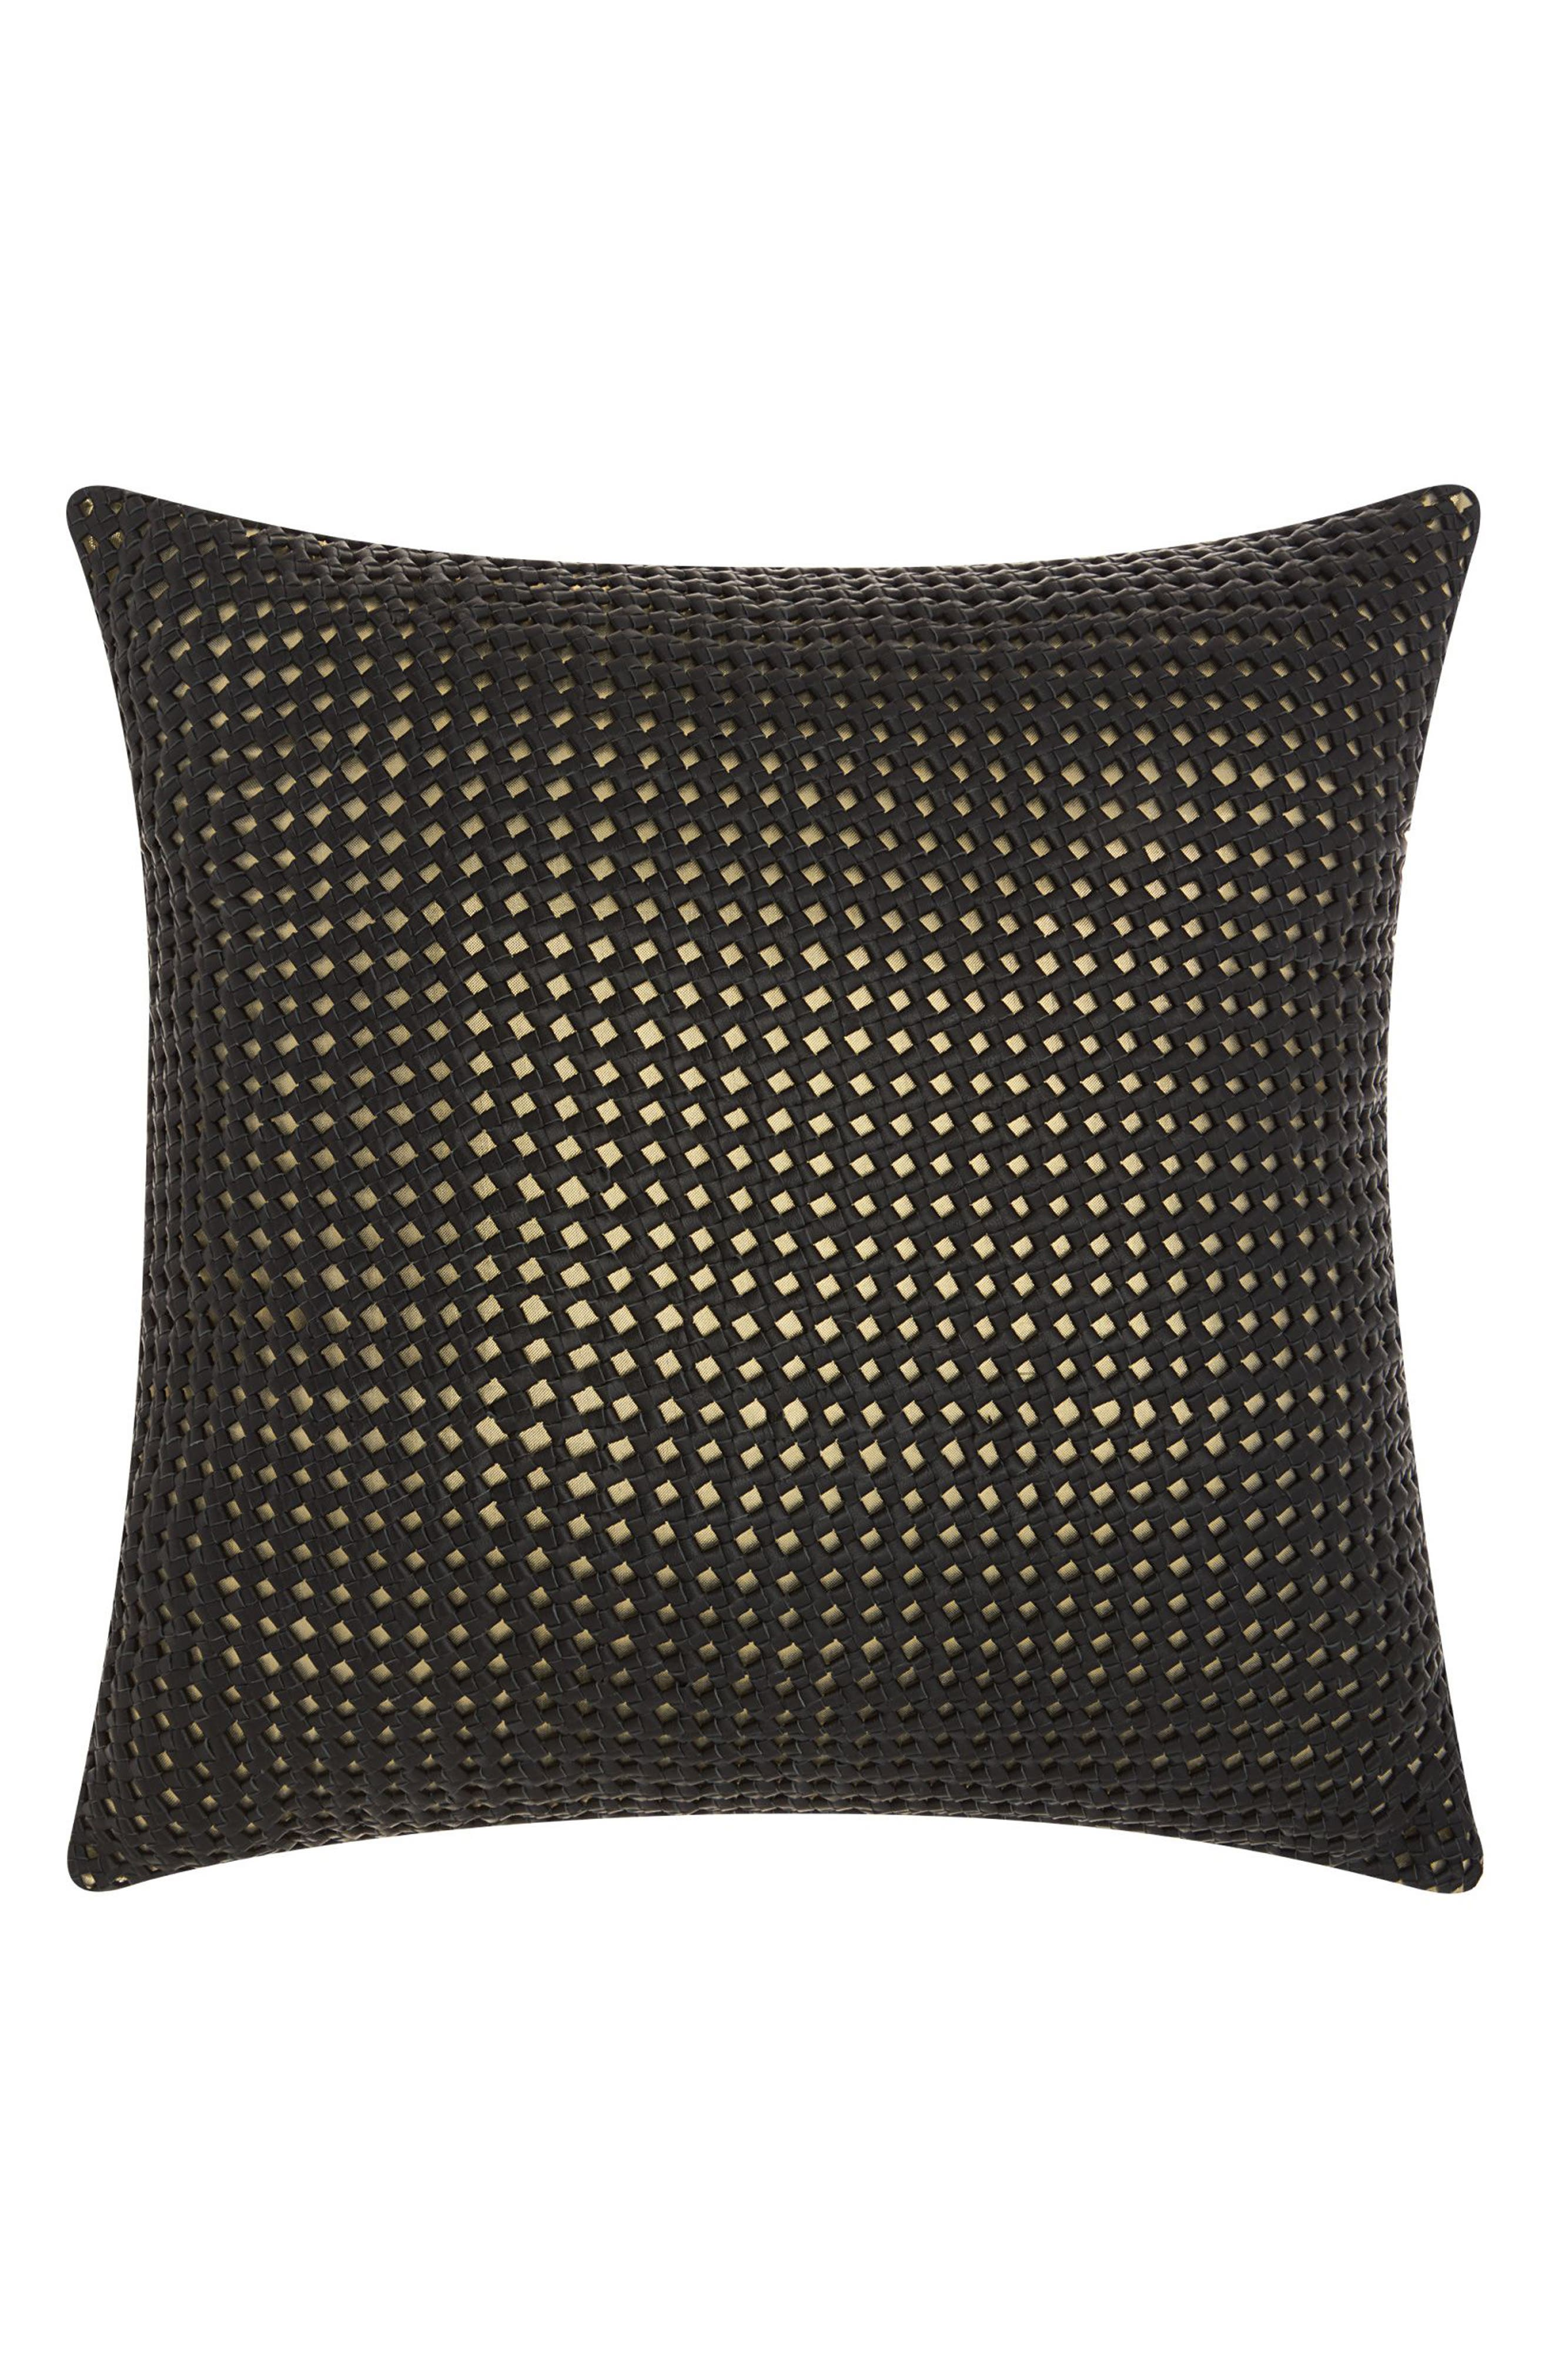 Mina Victory Woven Leather Accent Pillow